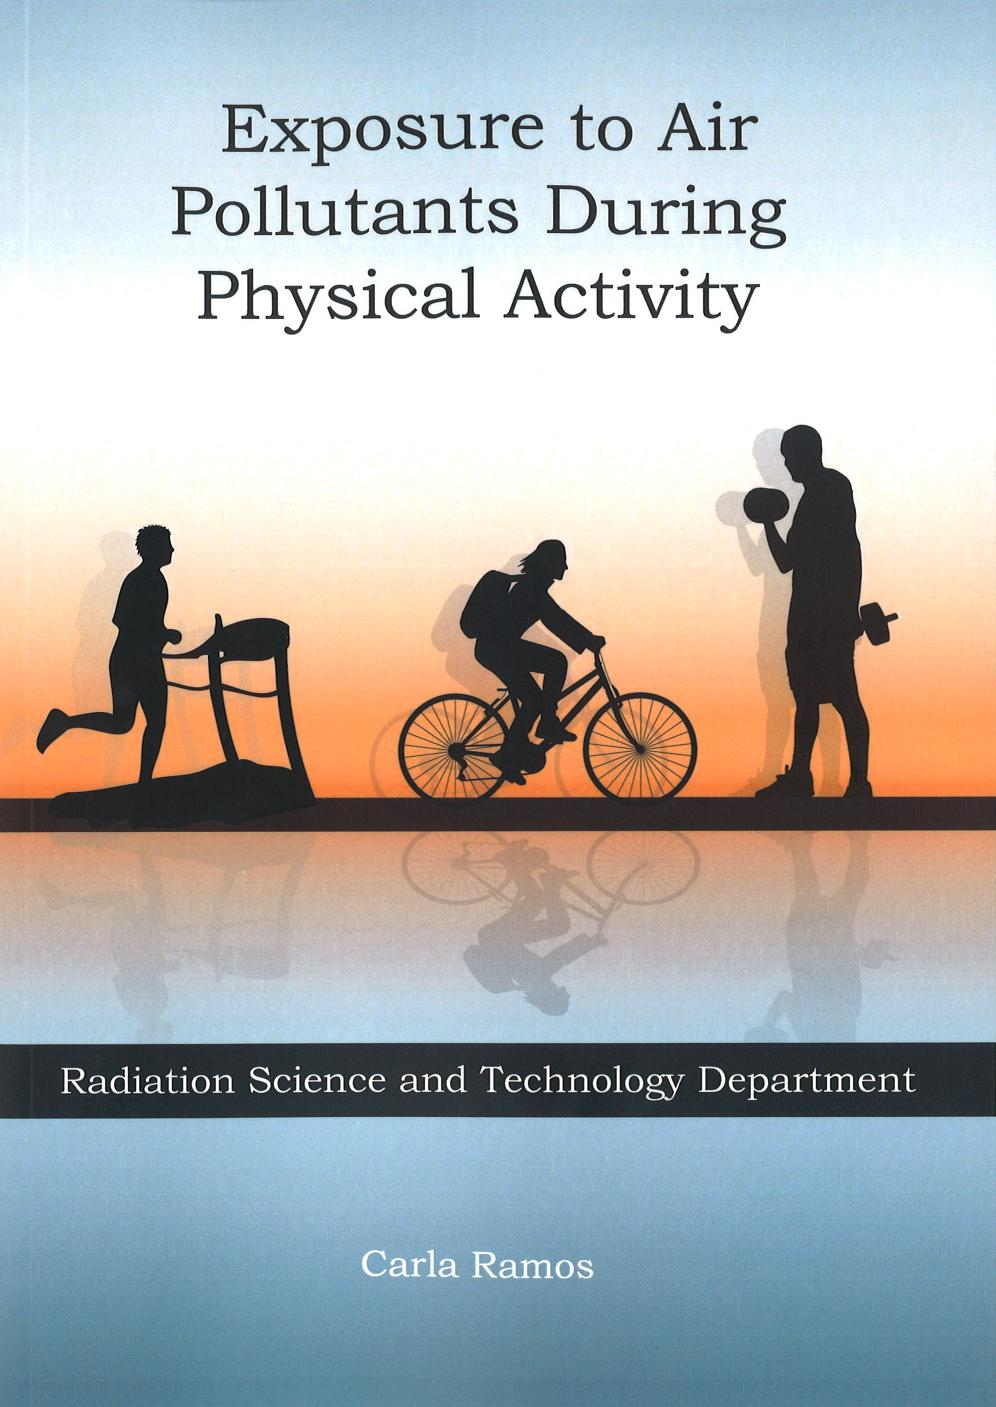 Exposure to Air Pollutants During Physical Activity